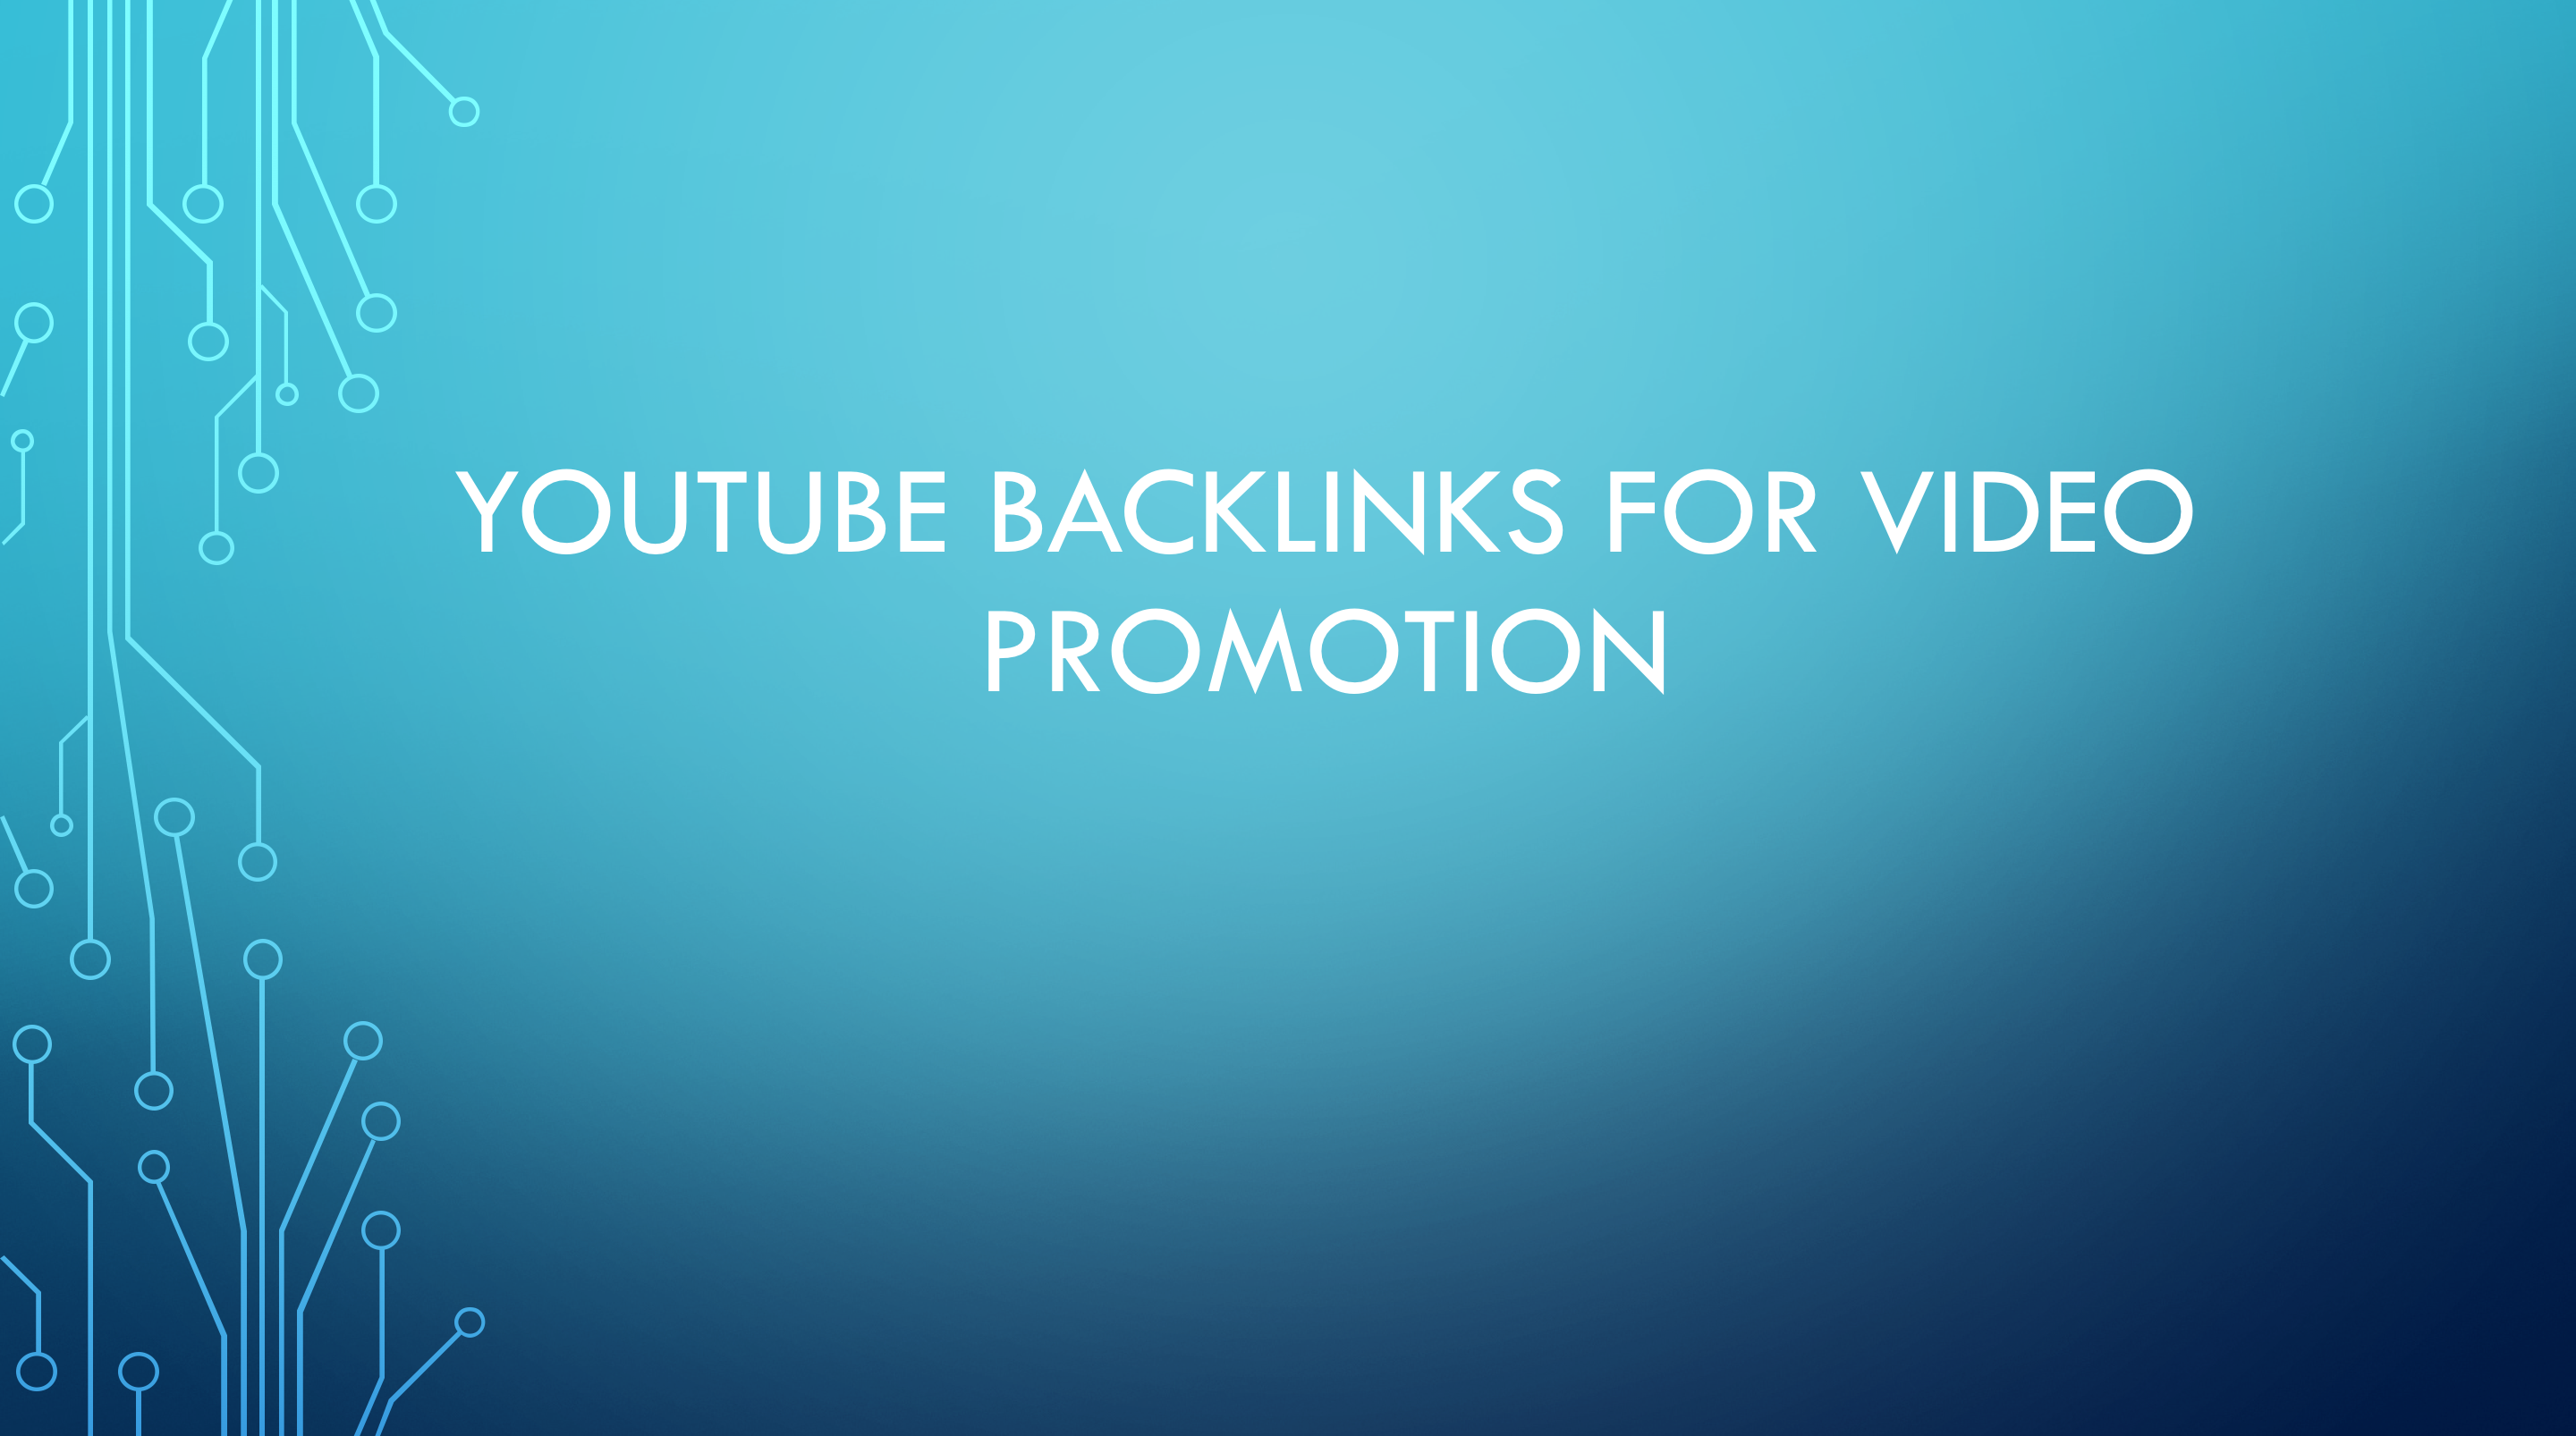 YouTube backlinks to boost video performance